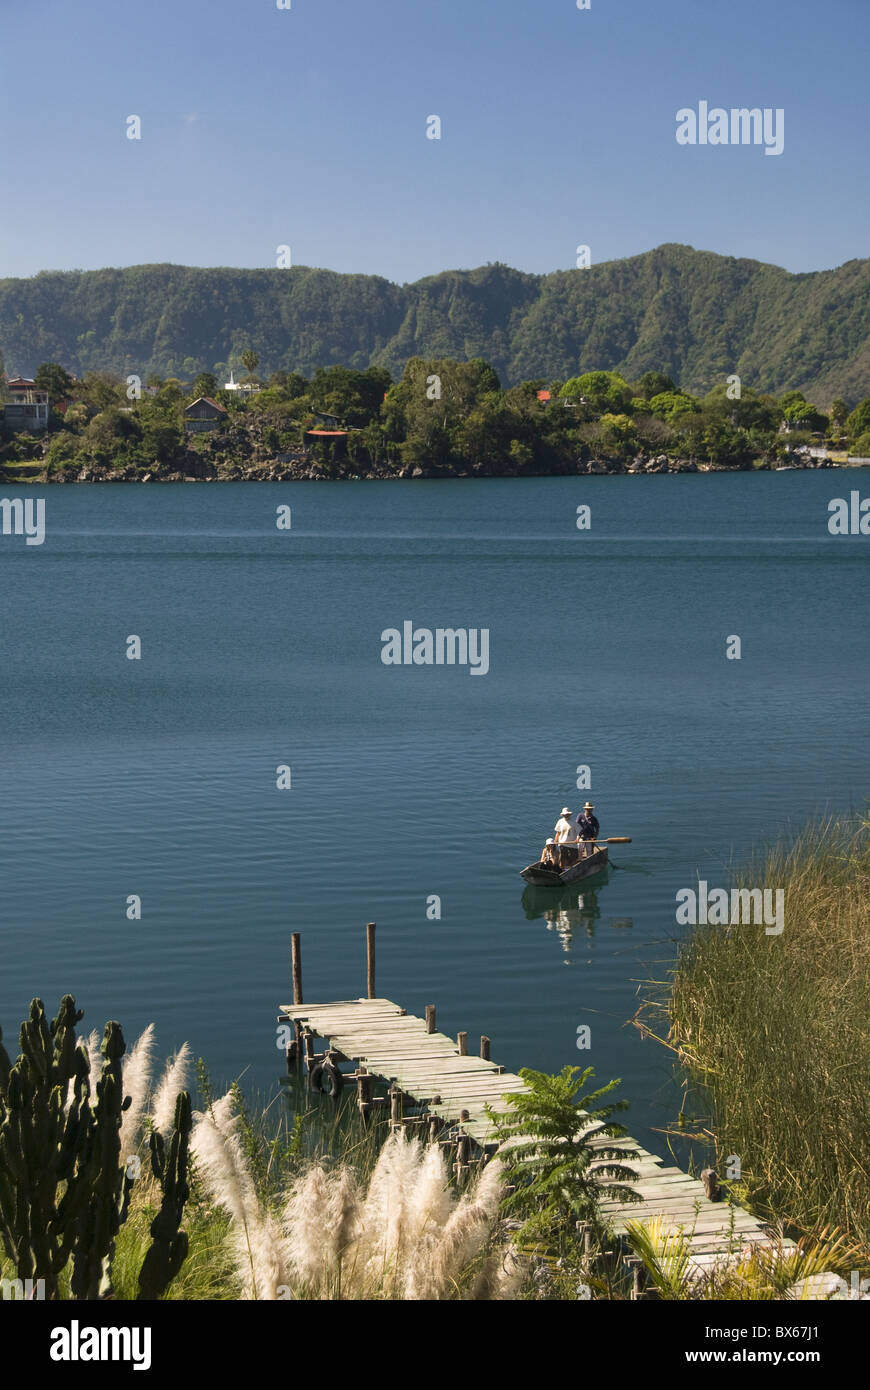 Lake Atitlan with fishermen in a small boat, near Santiago Atitlan. Guatemala, Central America Stock Photo